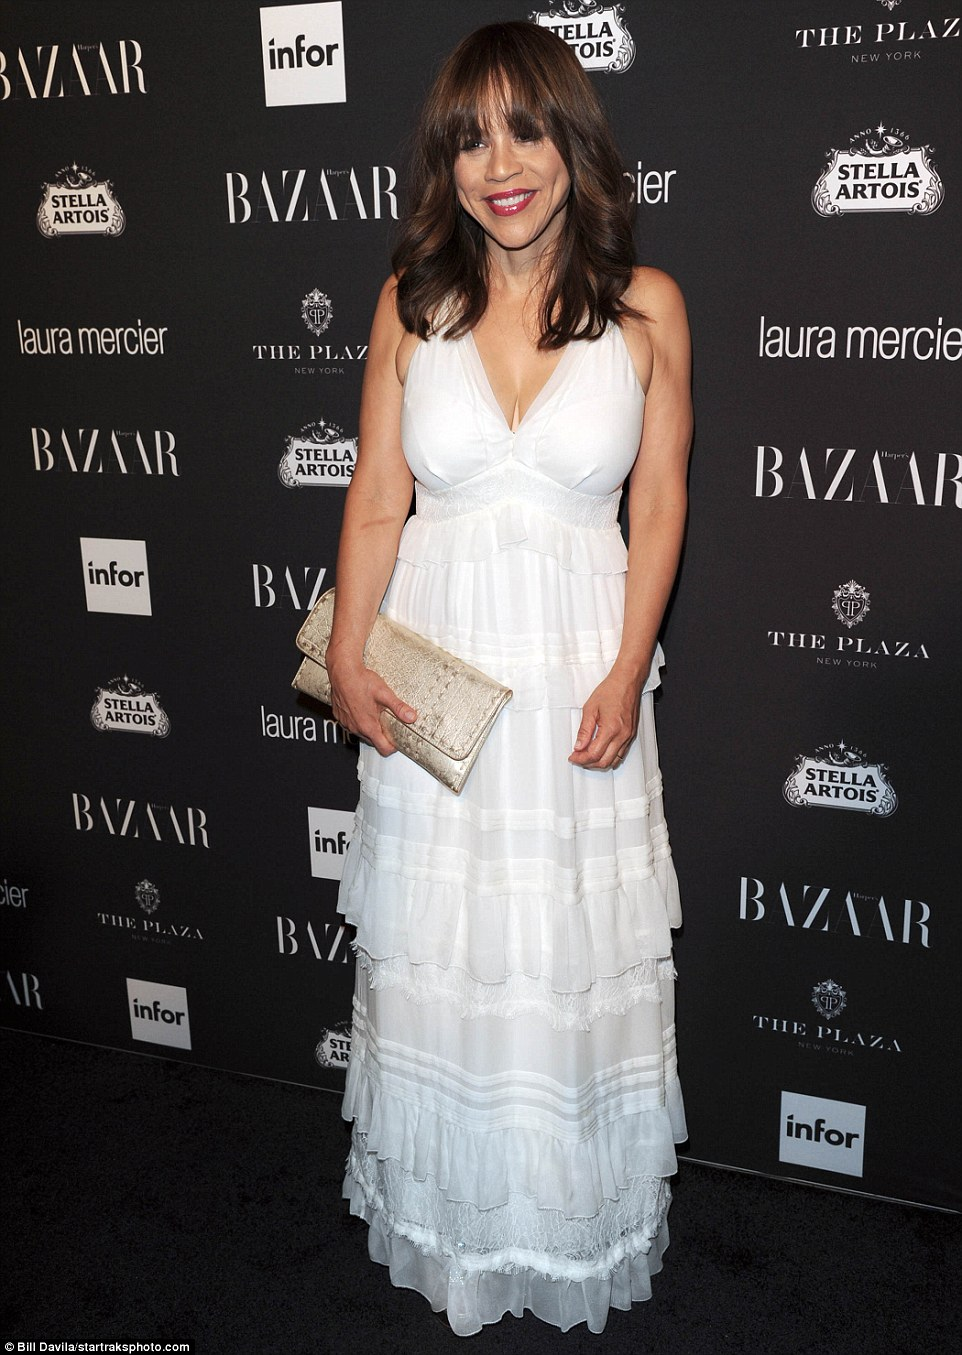 Such a pretty look: Rosie Perez wowed in a white layered frock, adding a gold clutch and shiny pink lipstick